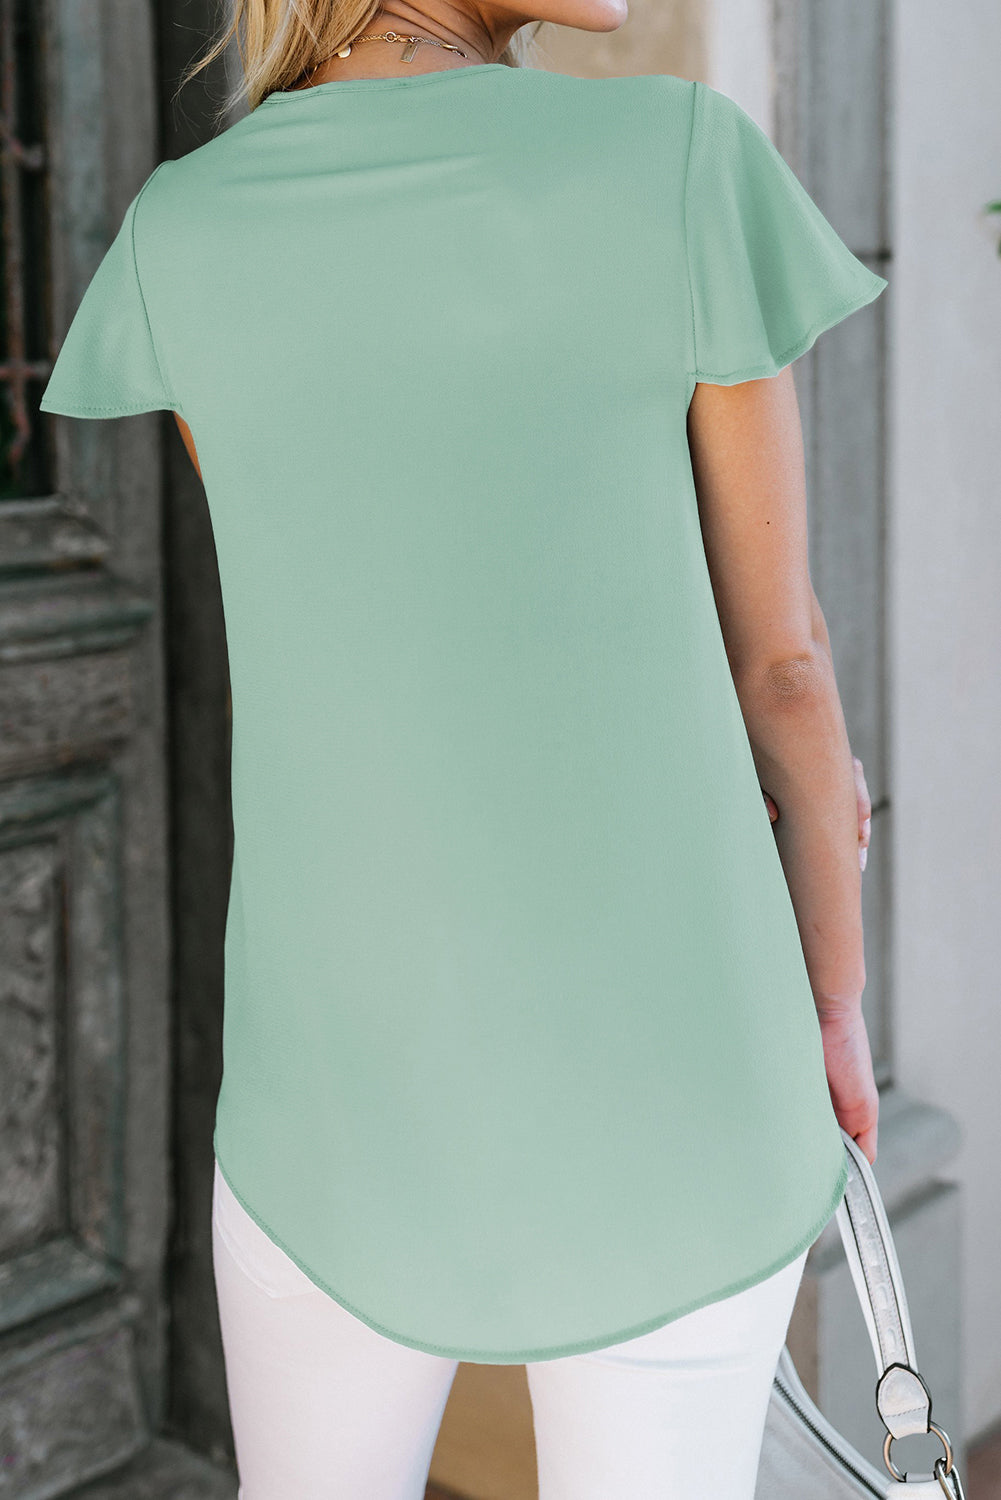 Green V Neck Short Sleeve Tee Tops & Tees Discount Designer Fashion Clothes Shoes Bags Women Men Kids Children Black Owned Business